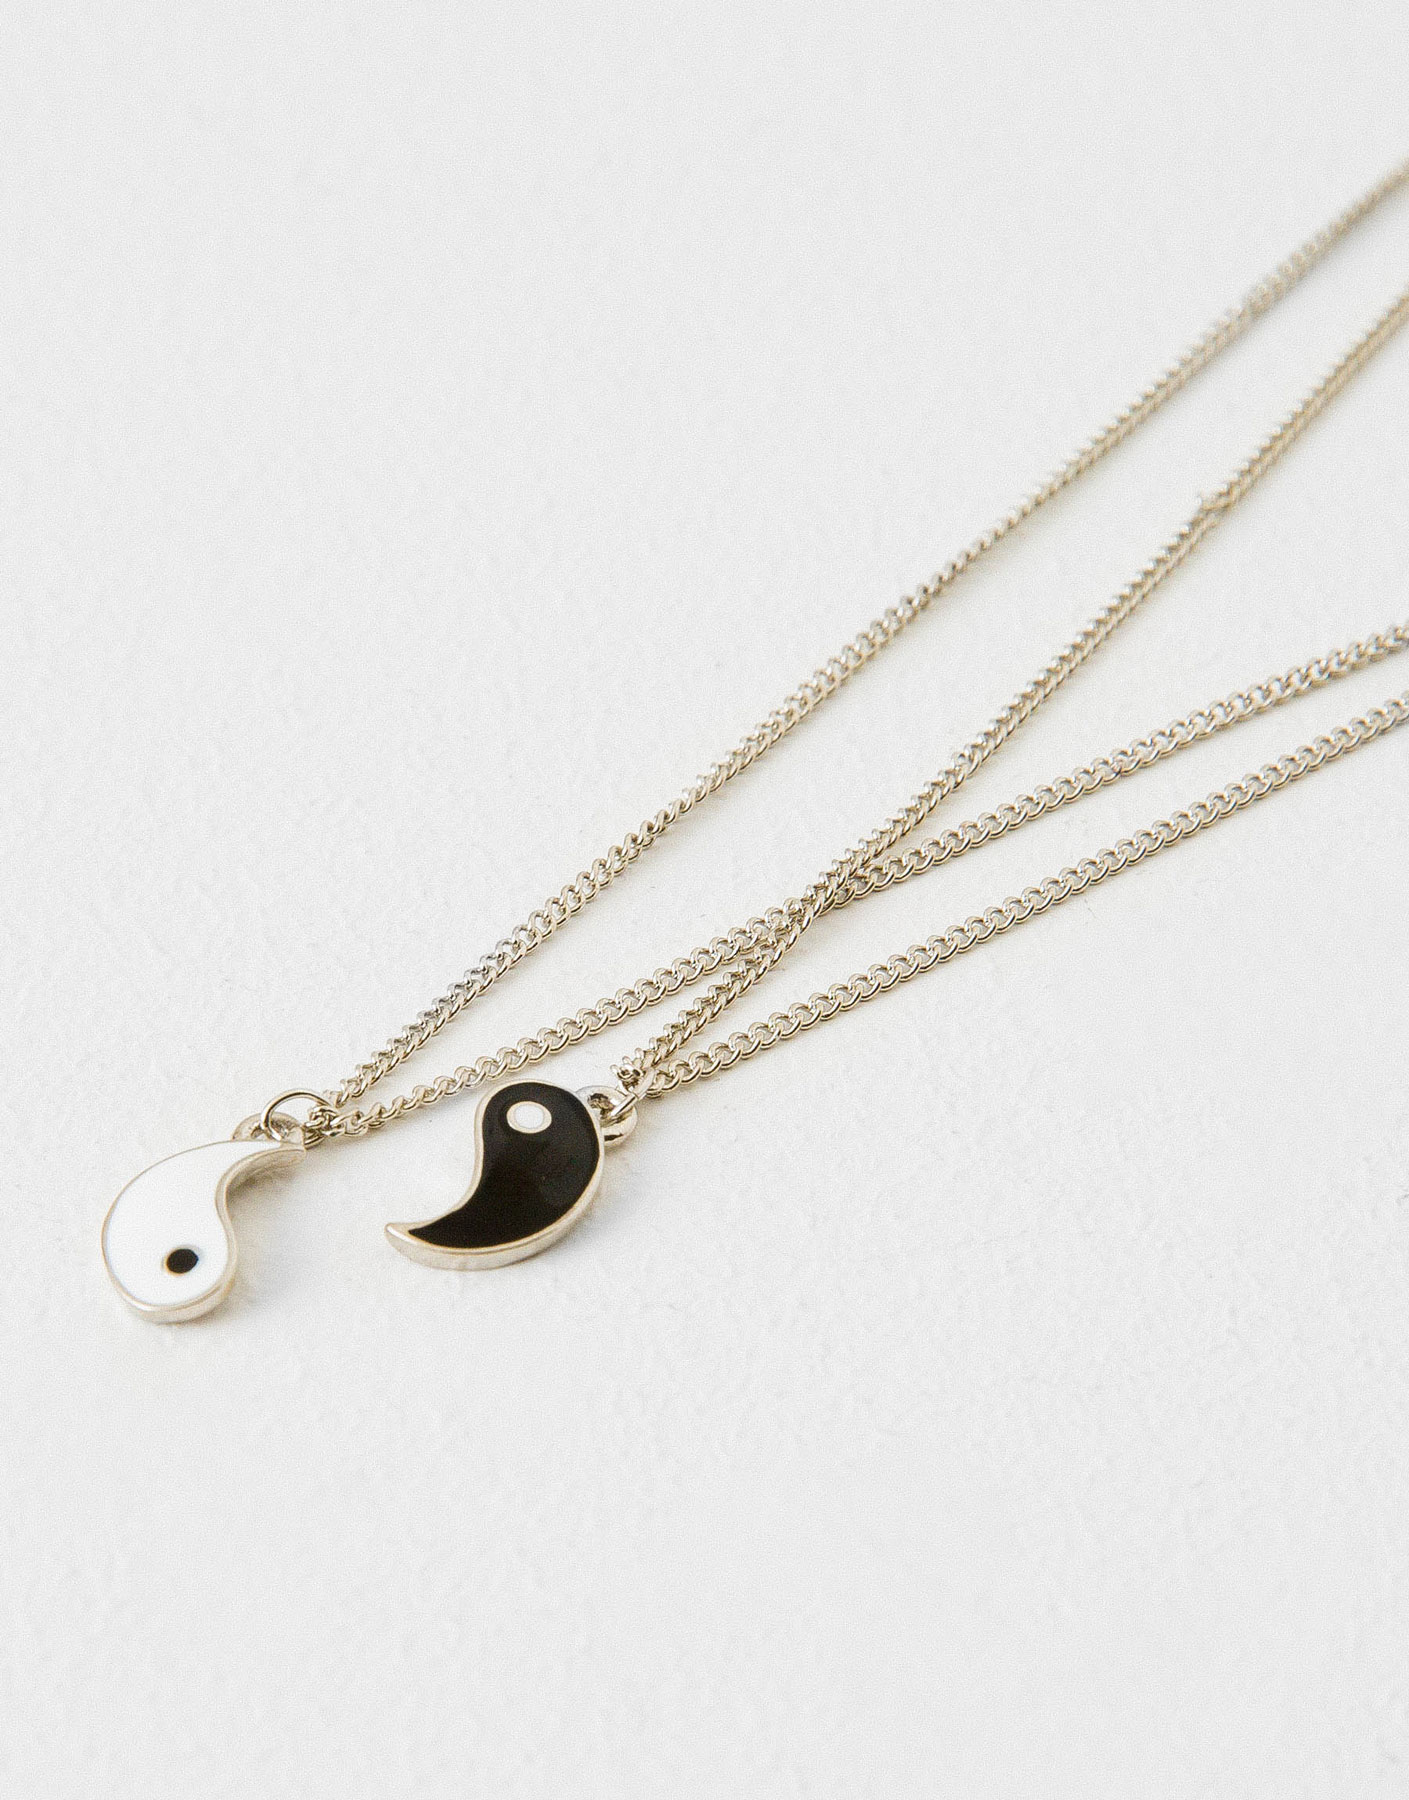 pack of yin and yang necklaces